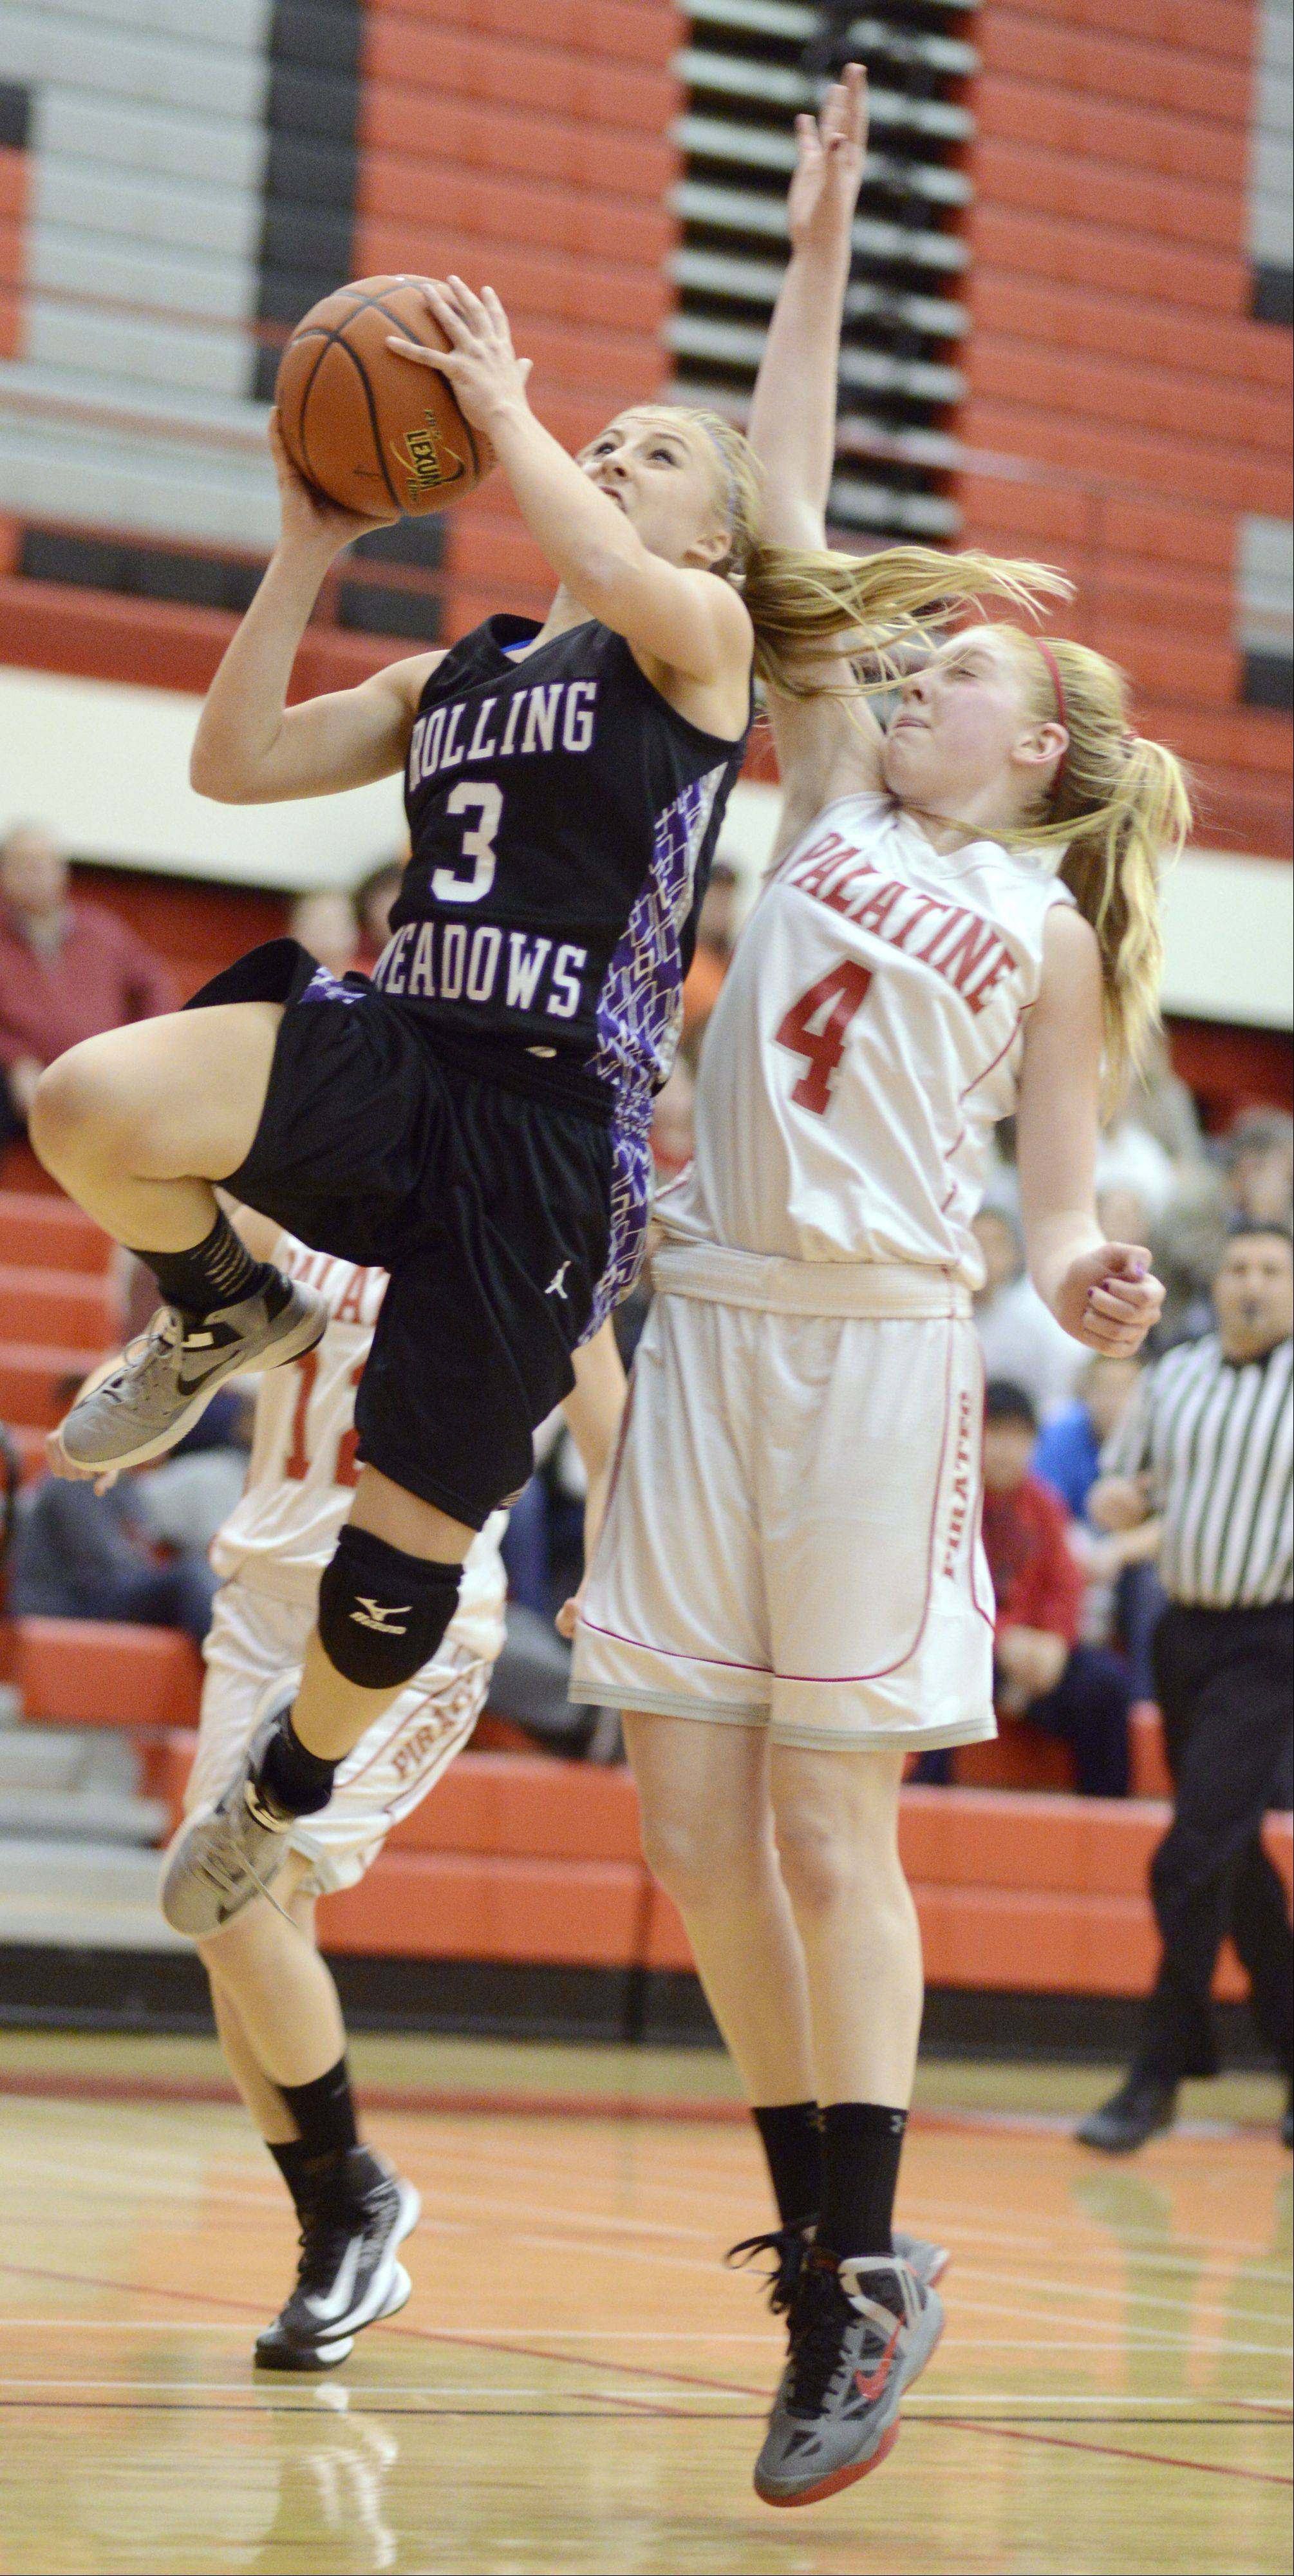 Rolling Meadows' Jackie Kemph stays a step ahead of Palatine's Morgan Radtke on a fastbreak during Wednesday's game.